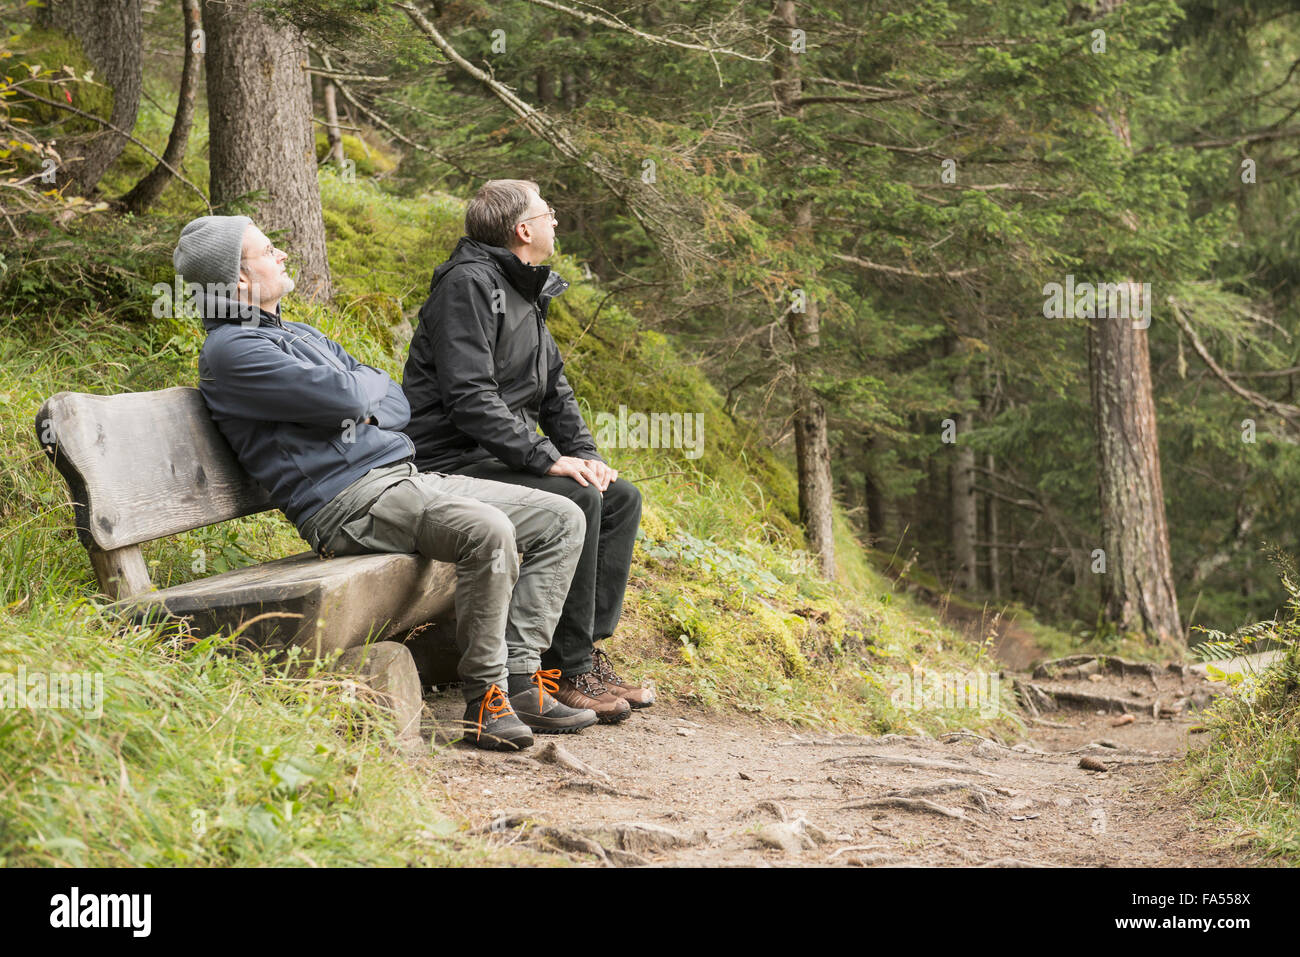 Two mature hikers resting on bench in forest, Austrian Alps, Carinthia,  Austria - Stock Image